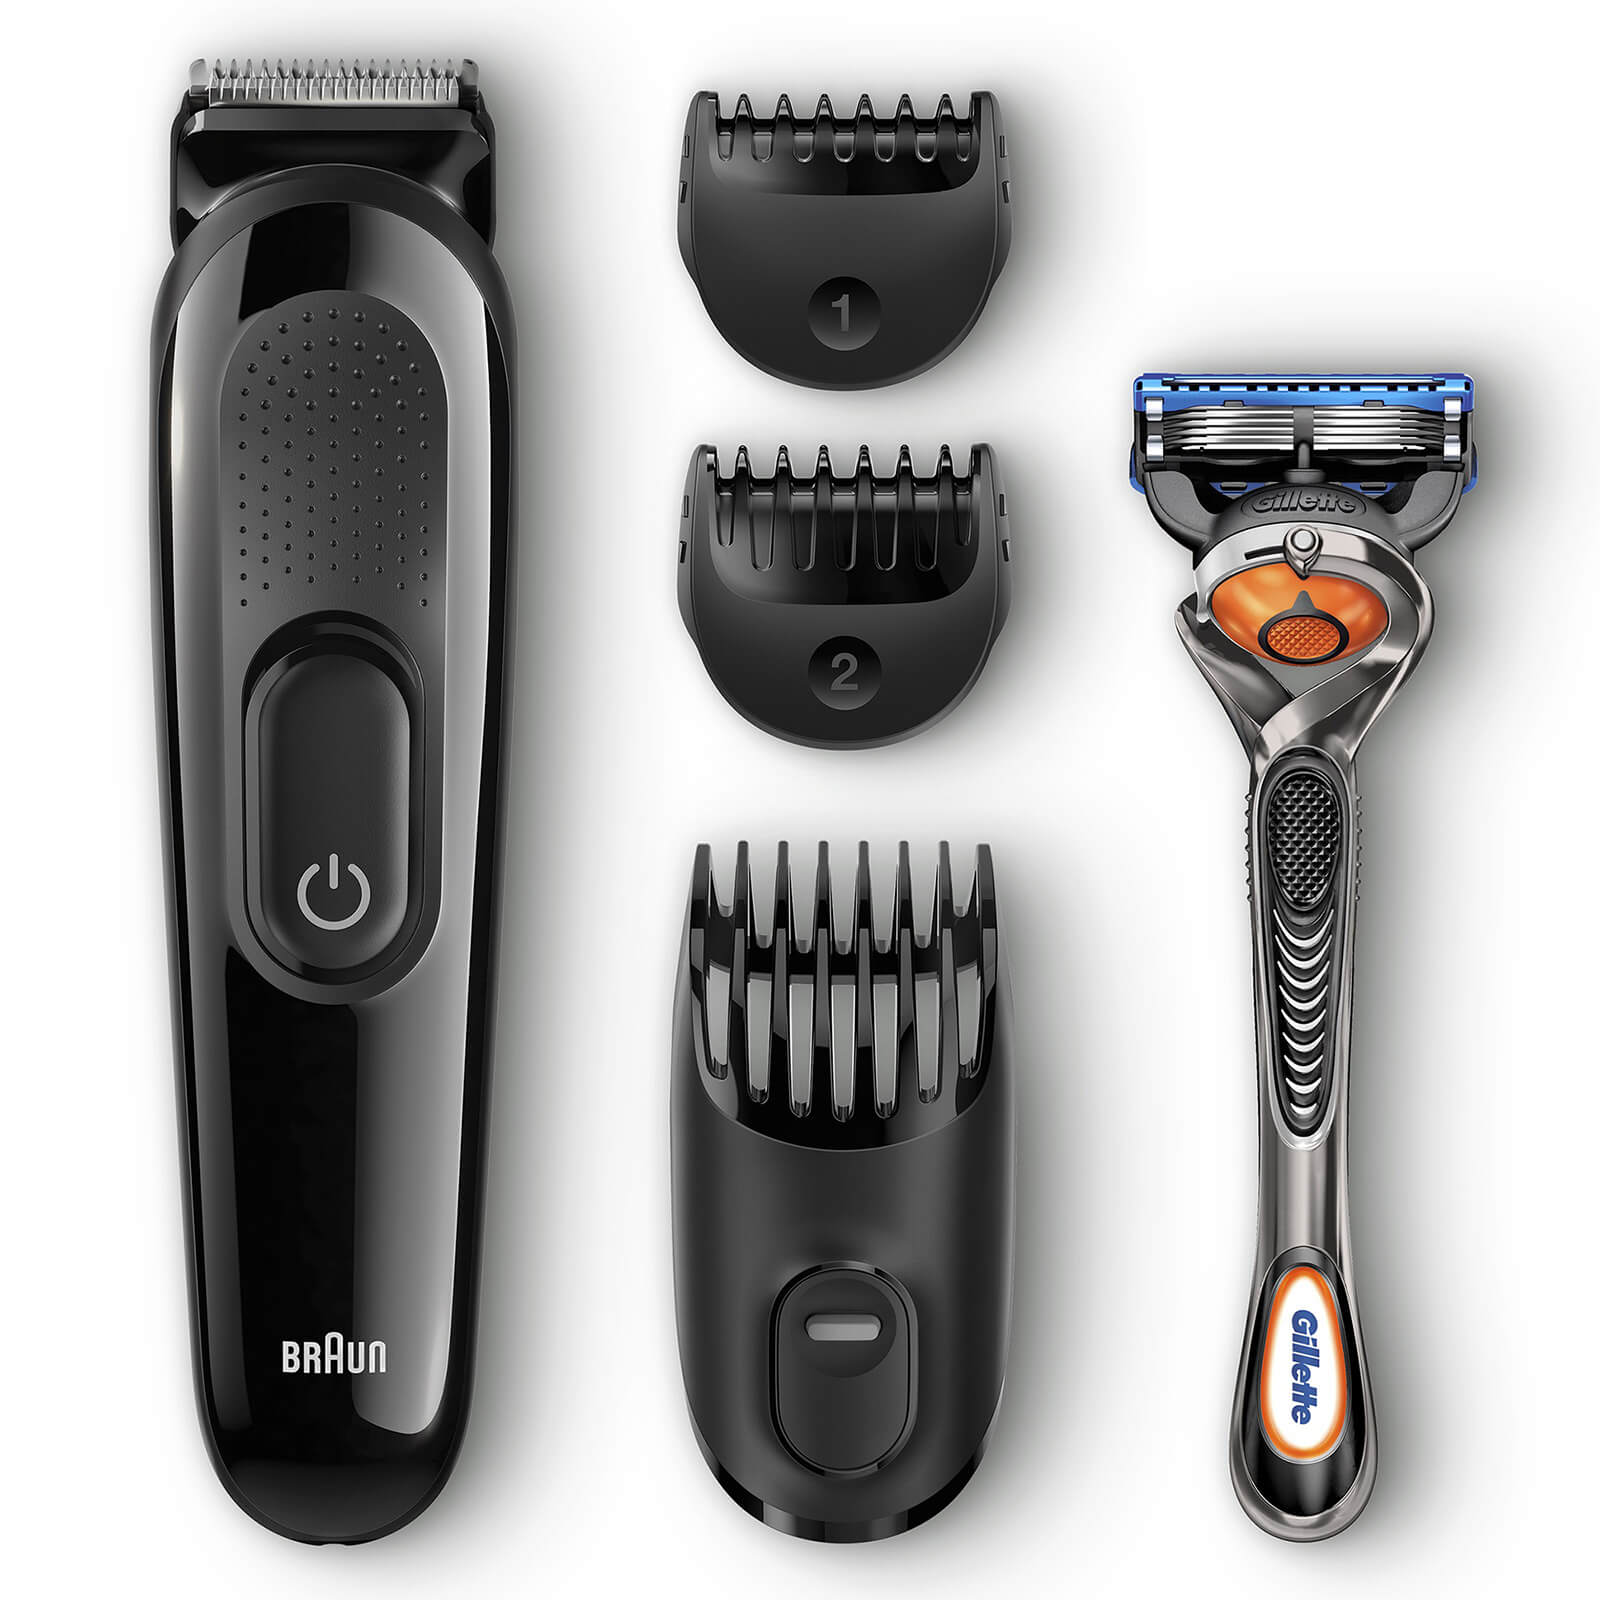 4-in-1 Styling Kit with Gillette Razor